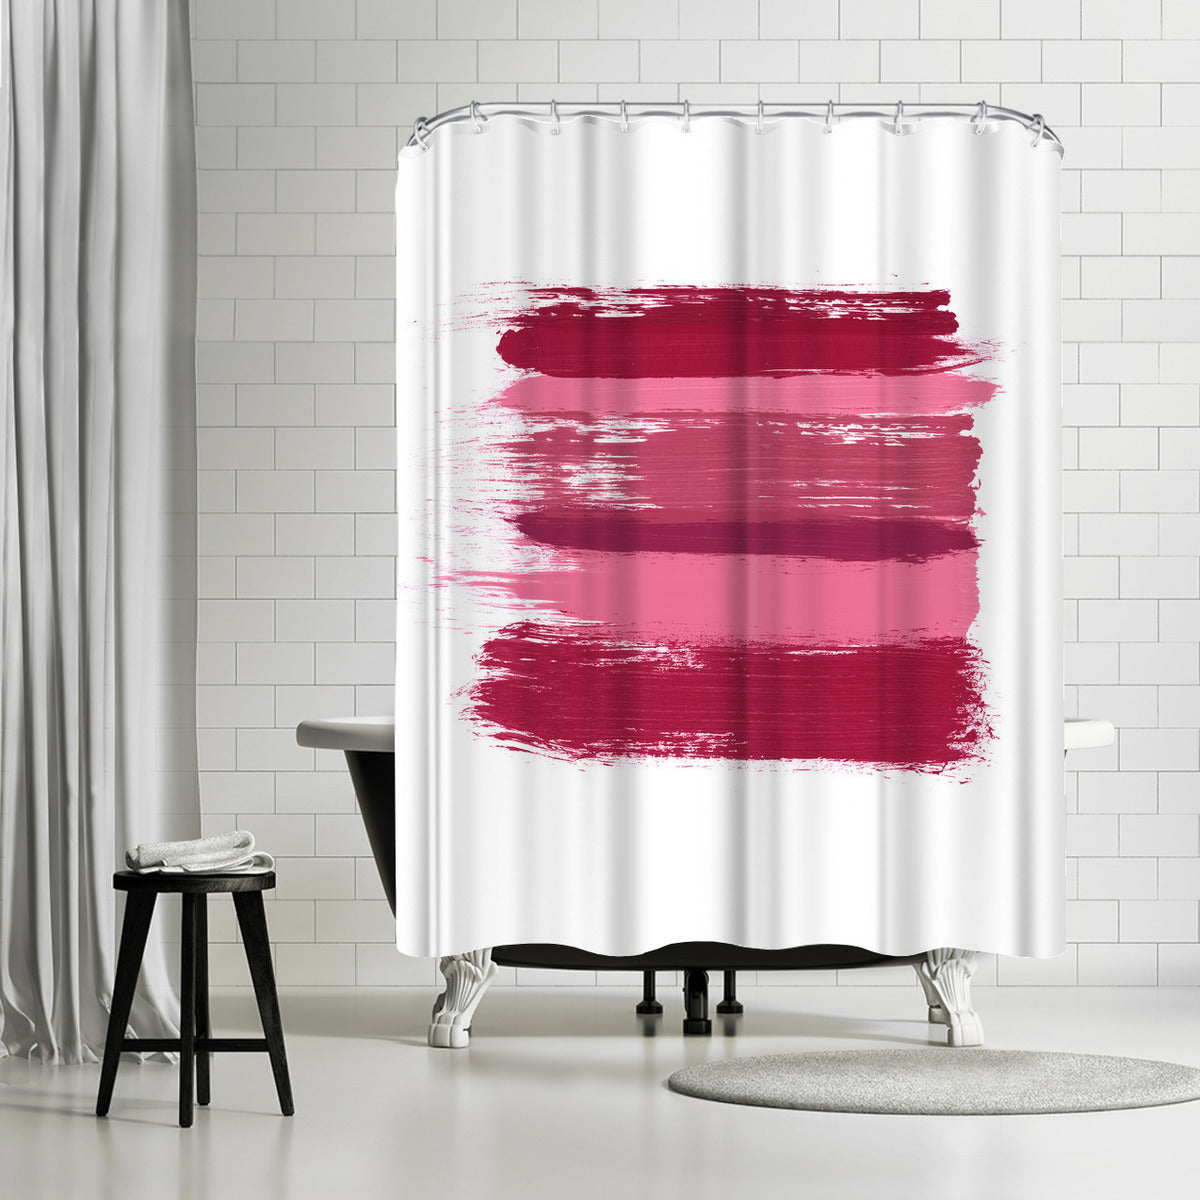 Wash Over Me Modern Pink by Amy Brinkman Shower Curtain -  - Americanflat